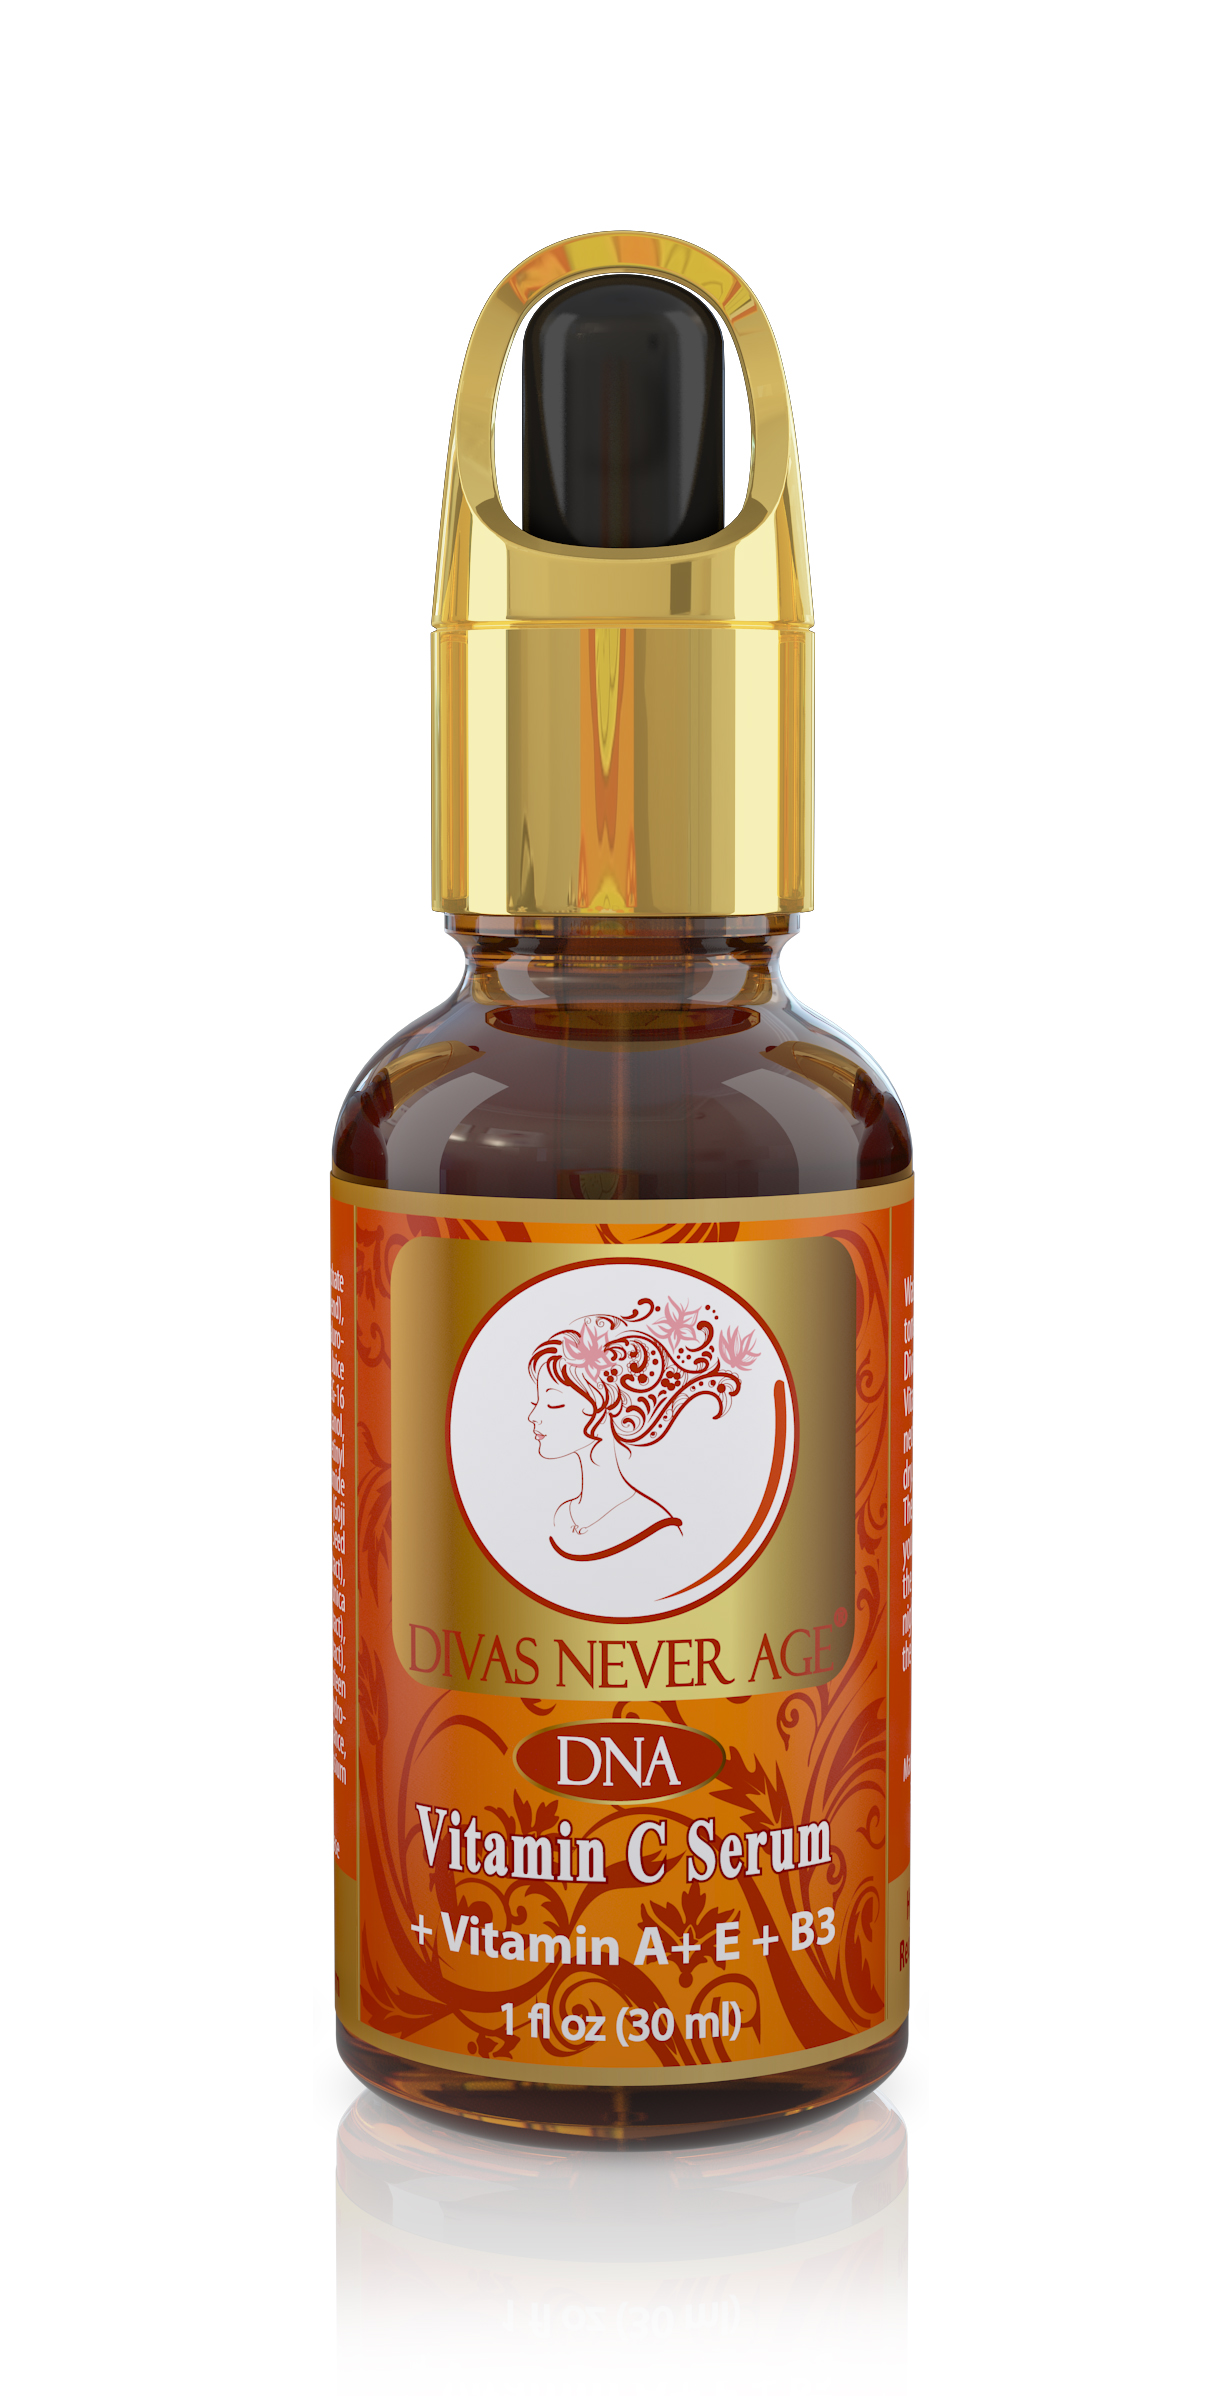 FINEST& DERMATOLOGIST RECOMMENDED VITAMIN C ANTI-AGING SERUM - Divas Never Age®